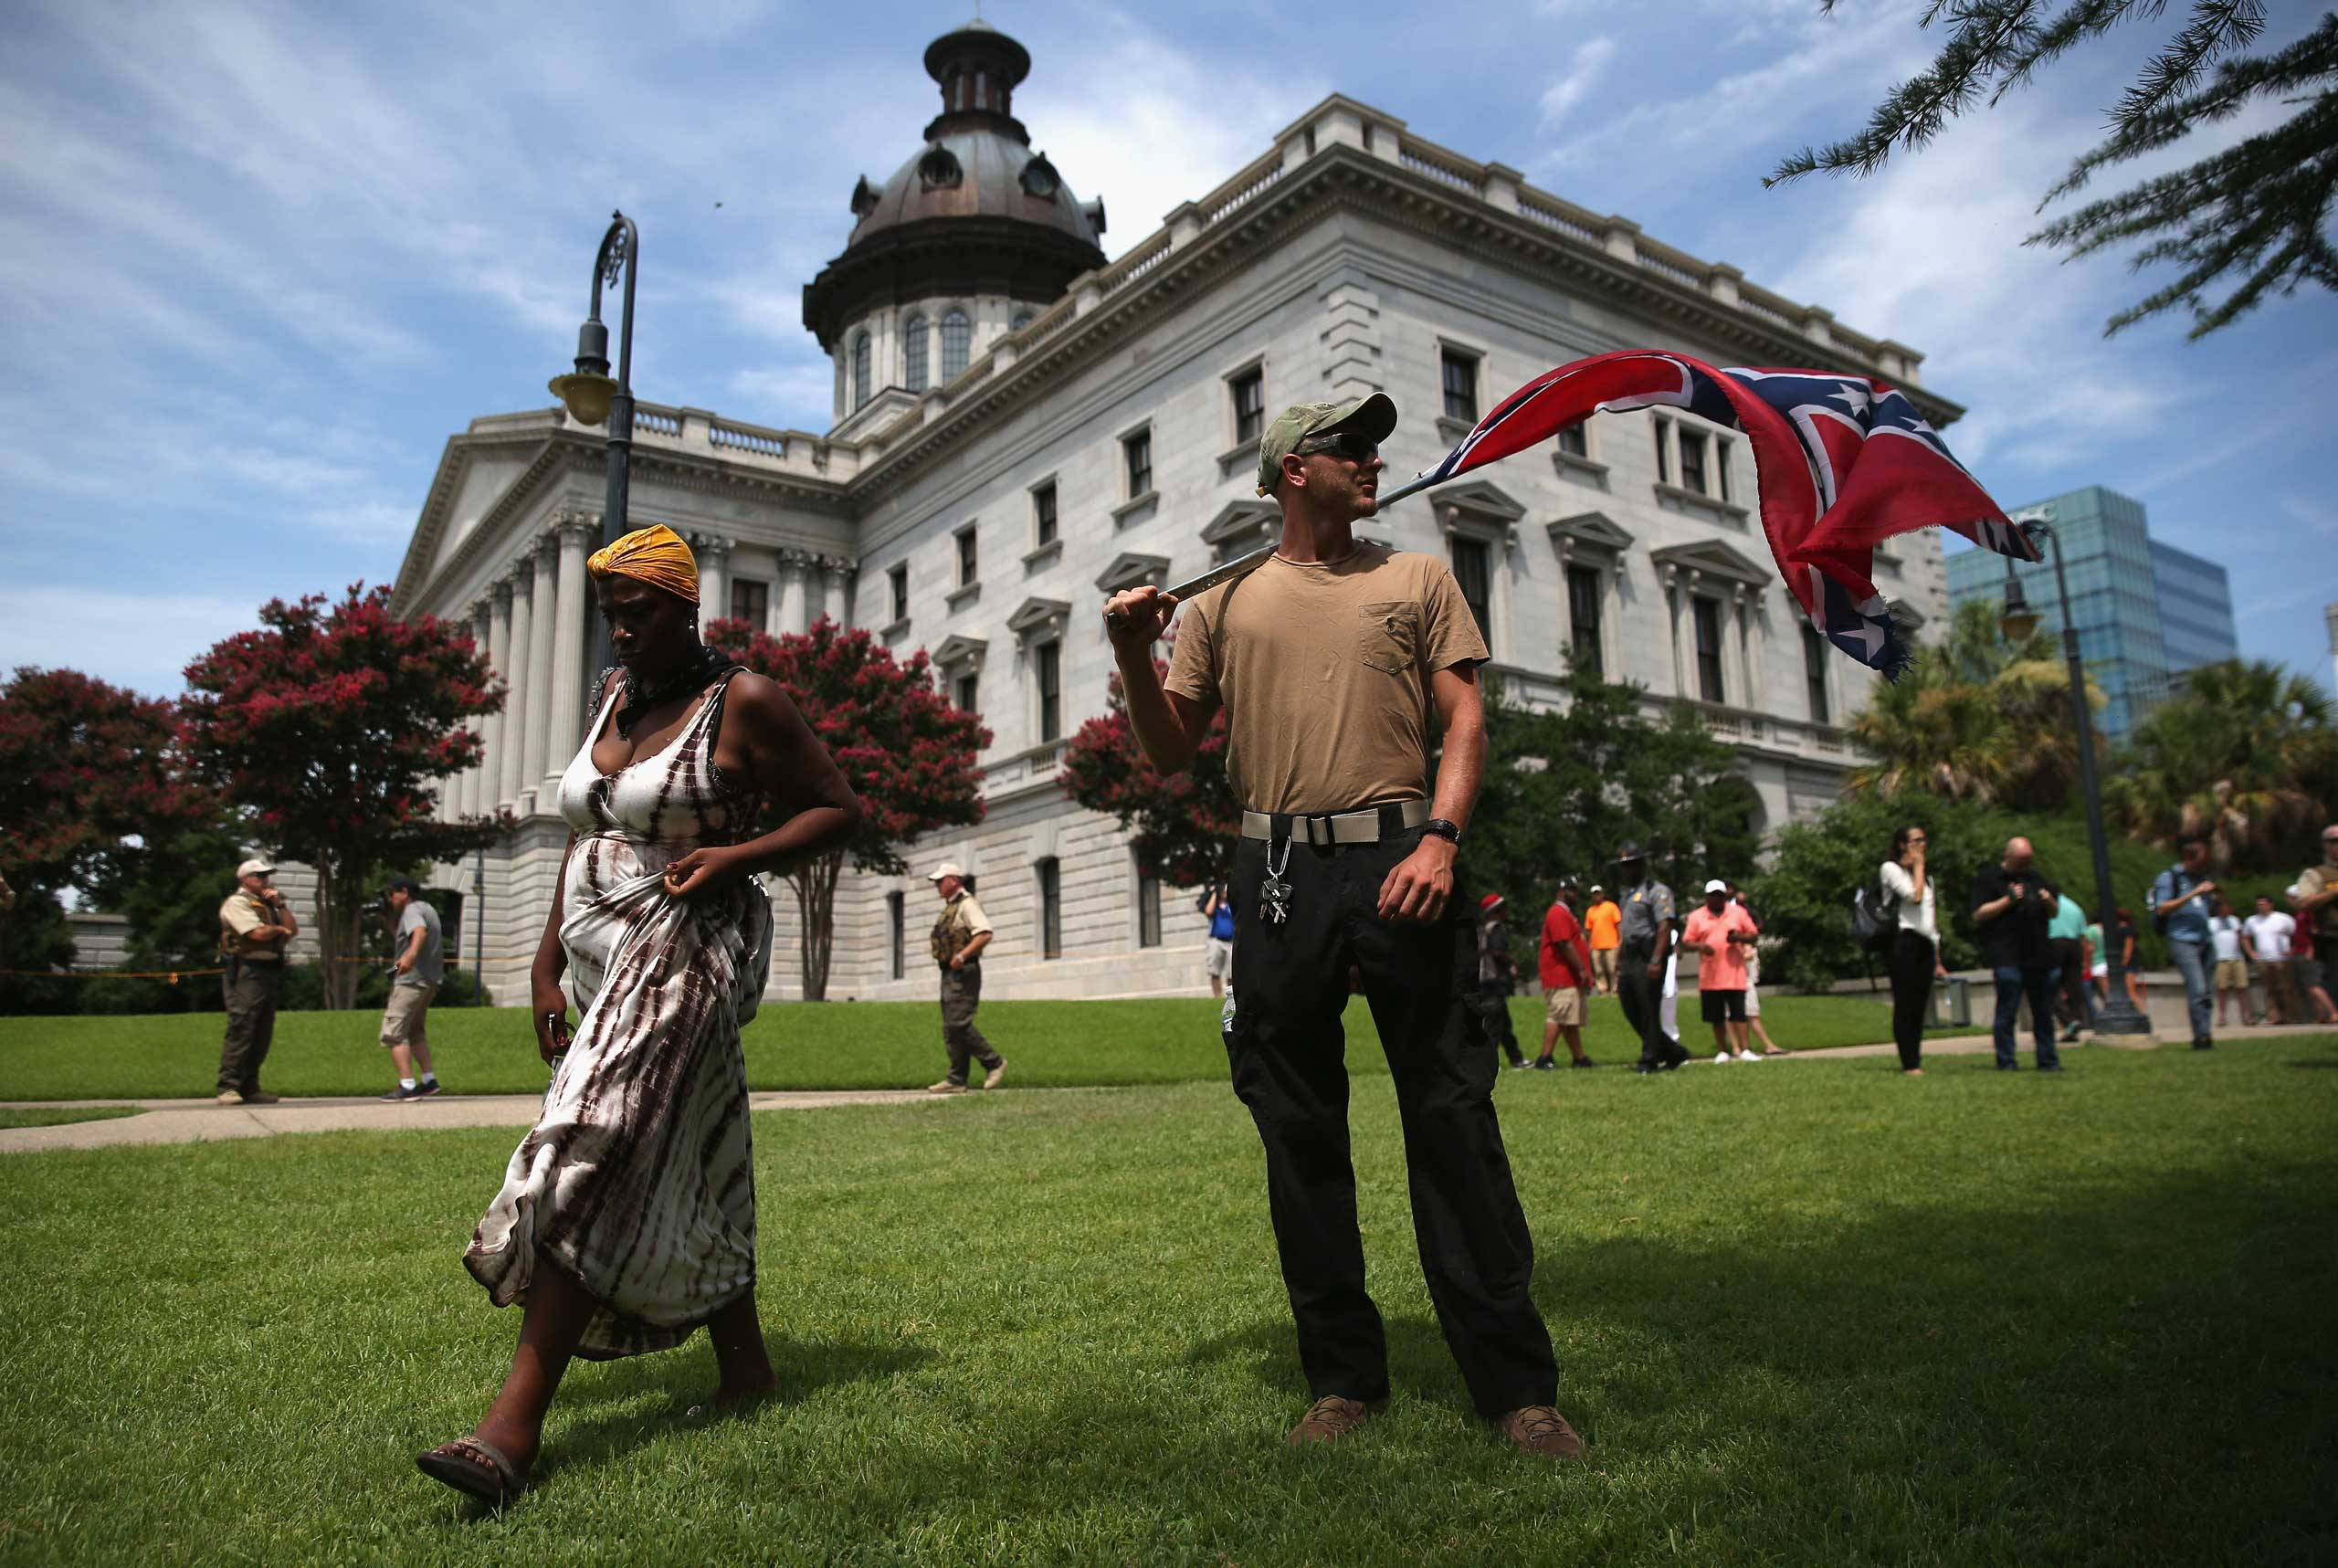 A man holds a Confederate flag on the state house grounds in Columbia, S.C. on July 18, 2015.